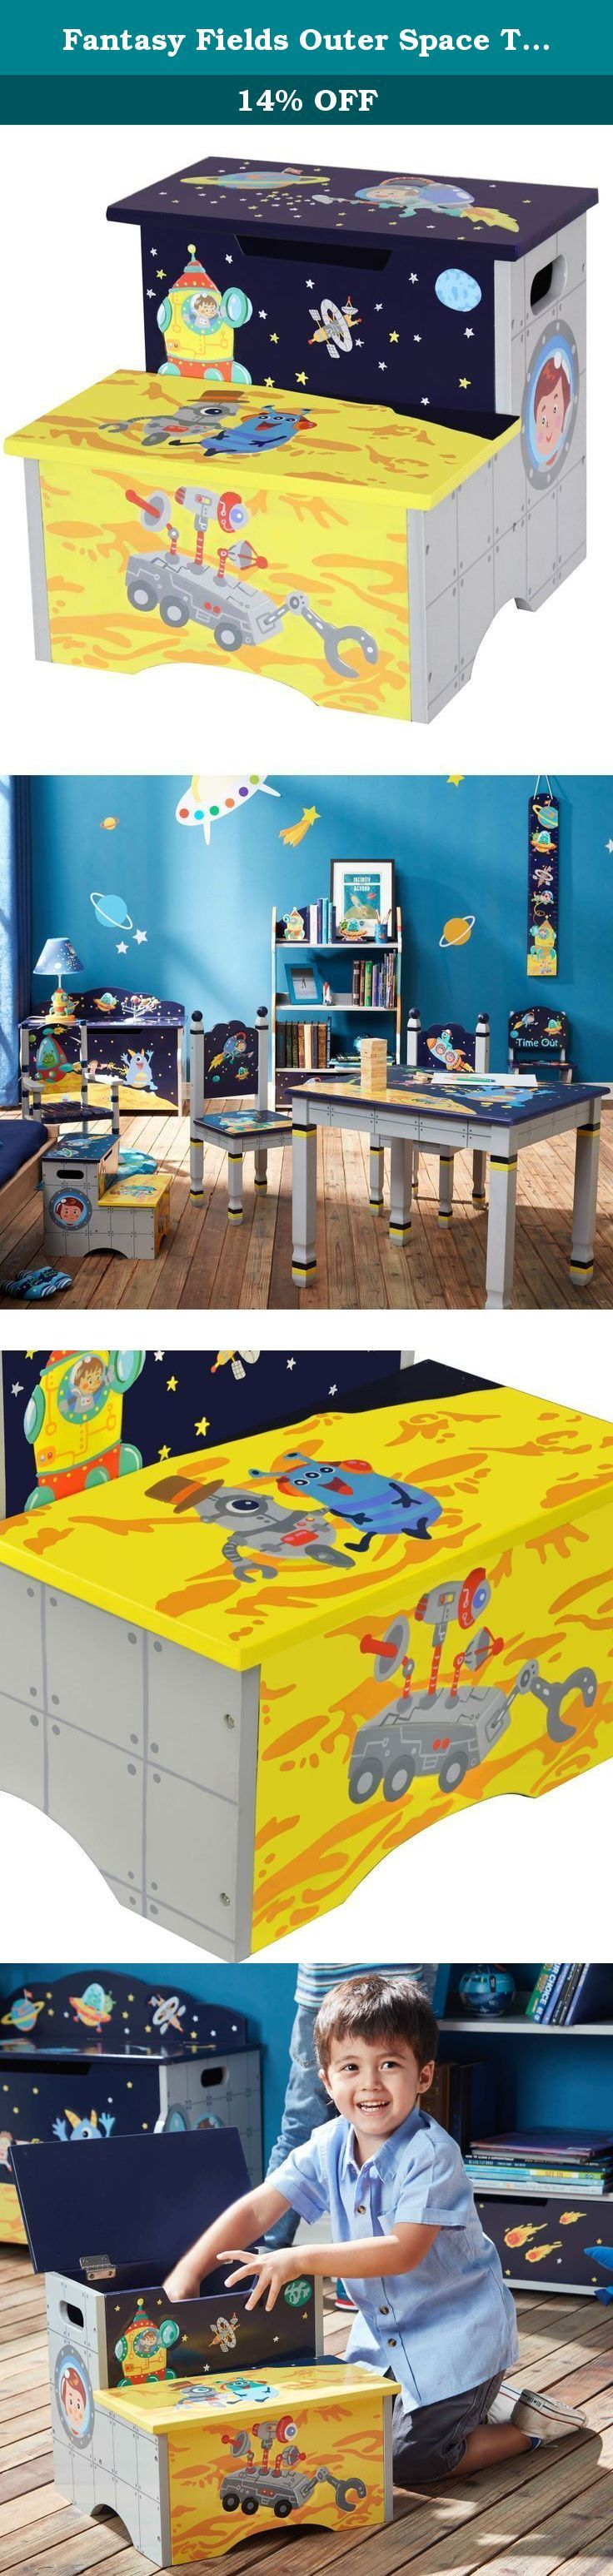 Fantasy Fields Outer Space Thematic Kids Wooden Step Stool with Storage. Step up into a galaxy beyond compare, with our Outer Space Step Stool with Storage! Astronauts can pretend they are walking on the moon when they view the imagination inspiring designs located on the steps. Playful aliens and space ships dance about the design and tie it together to create a story that's a fun as it is educational. Top step lifts up to provide a handy little storage area to store keepsakes.